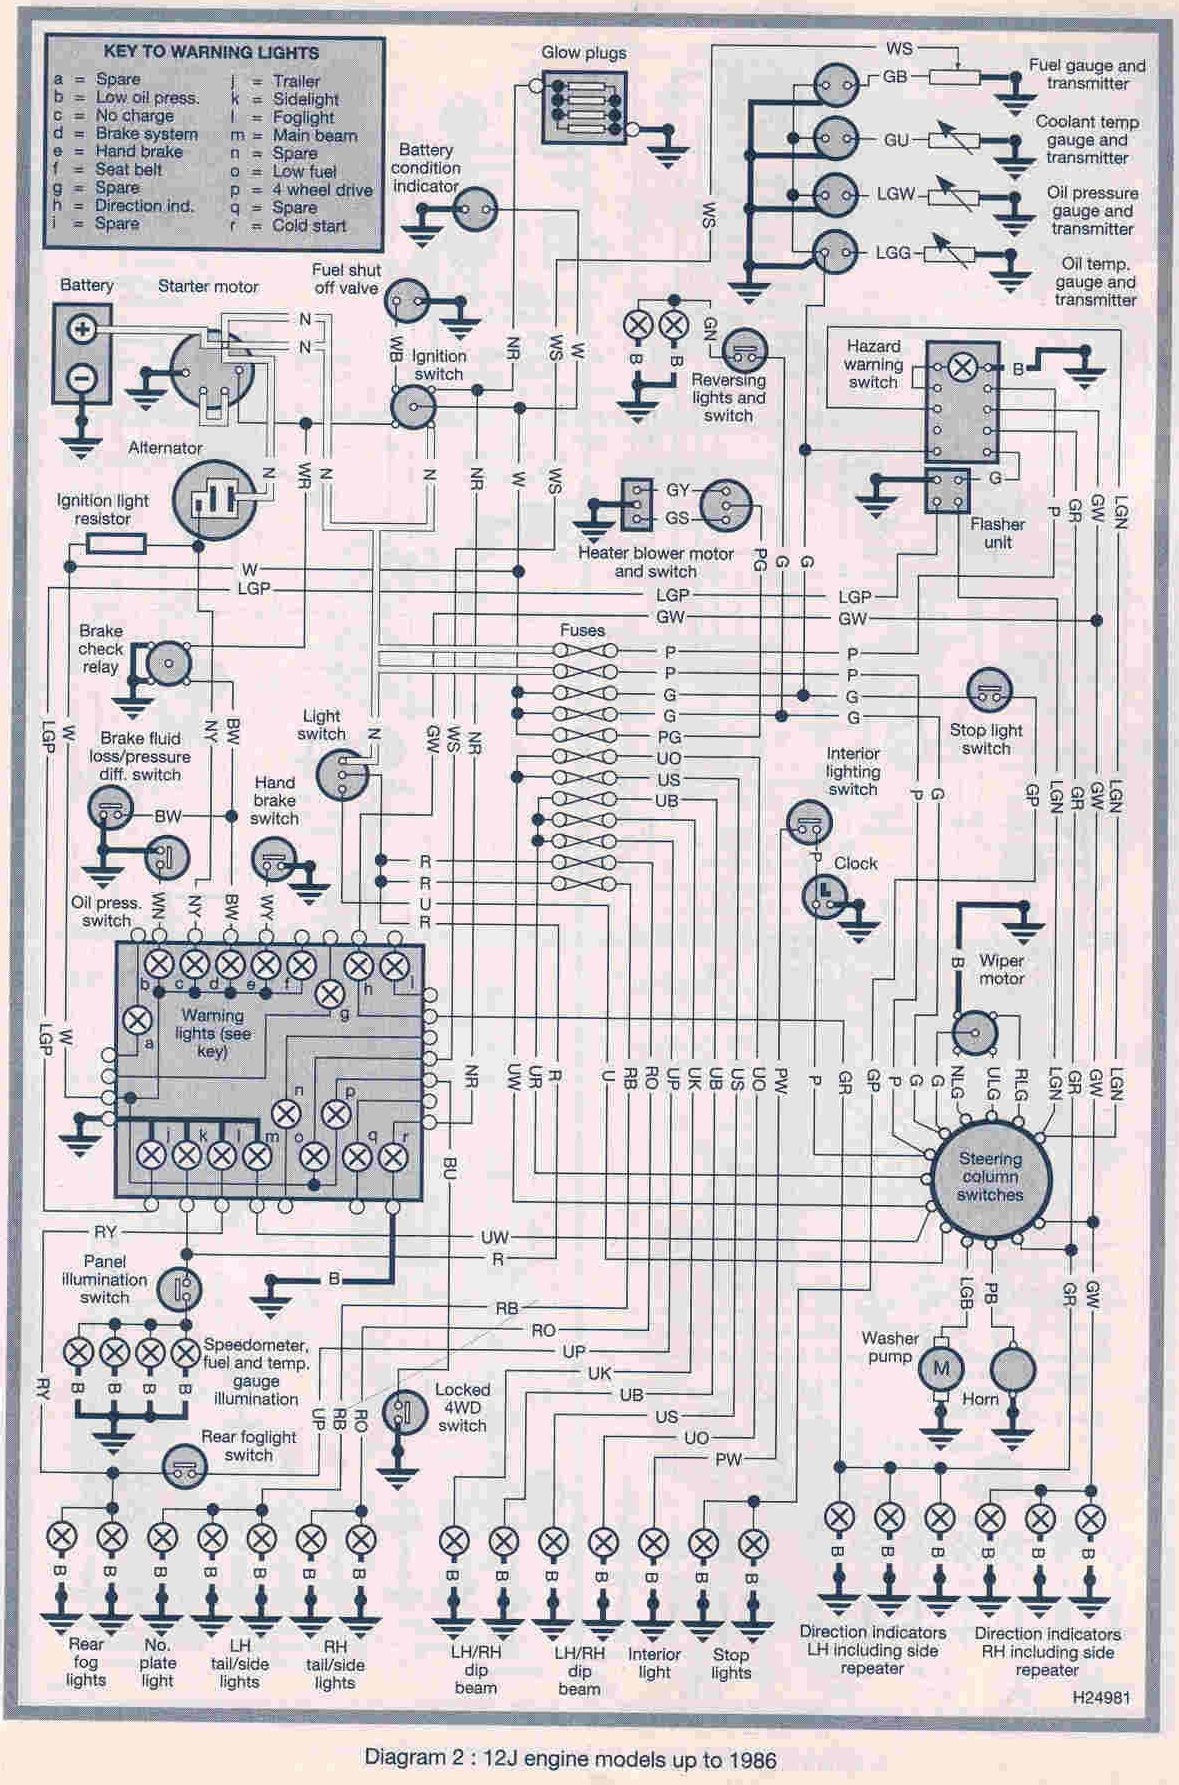 Help requested with 1990 v8 wiring loom diagrams - Defender Forum (1983 -  2016) - LR4x4 - The Land Rover ForumLR4x4